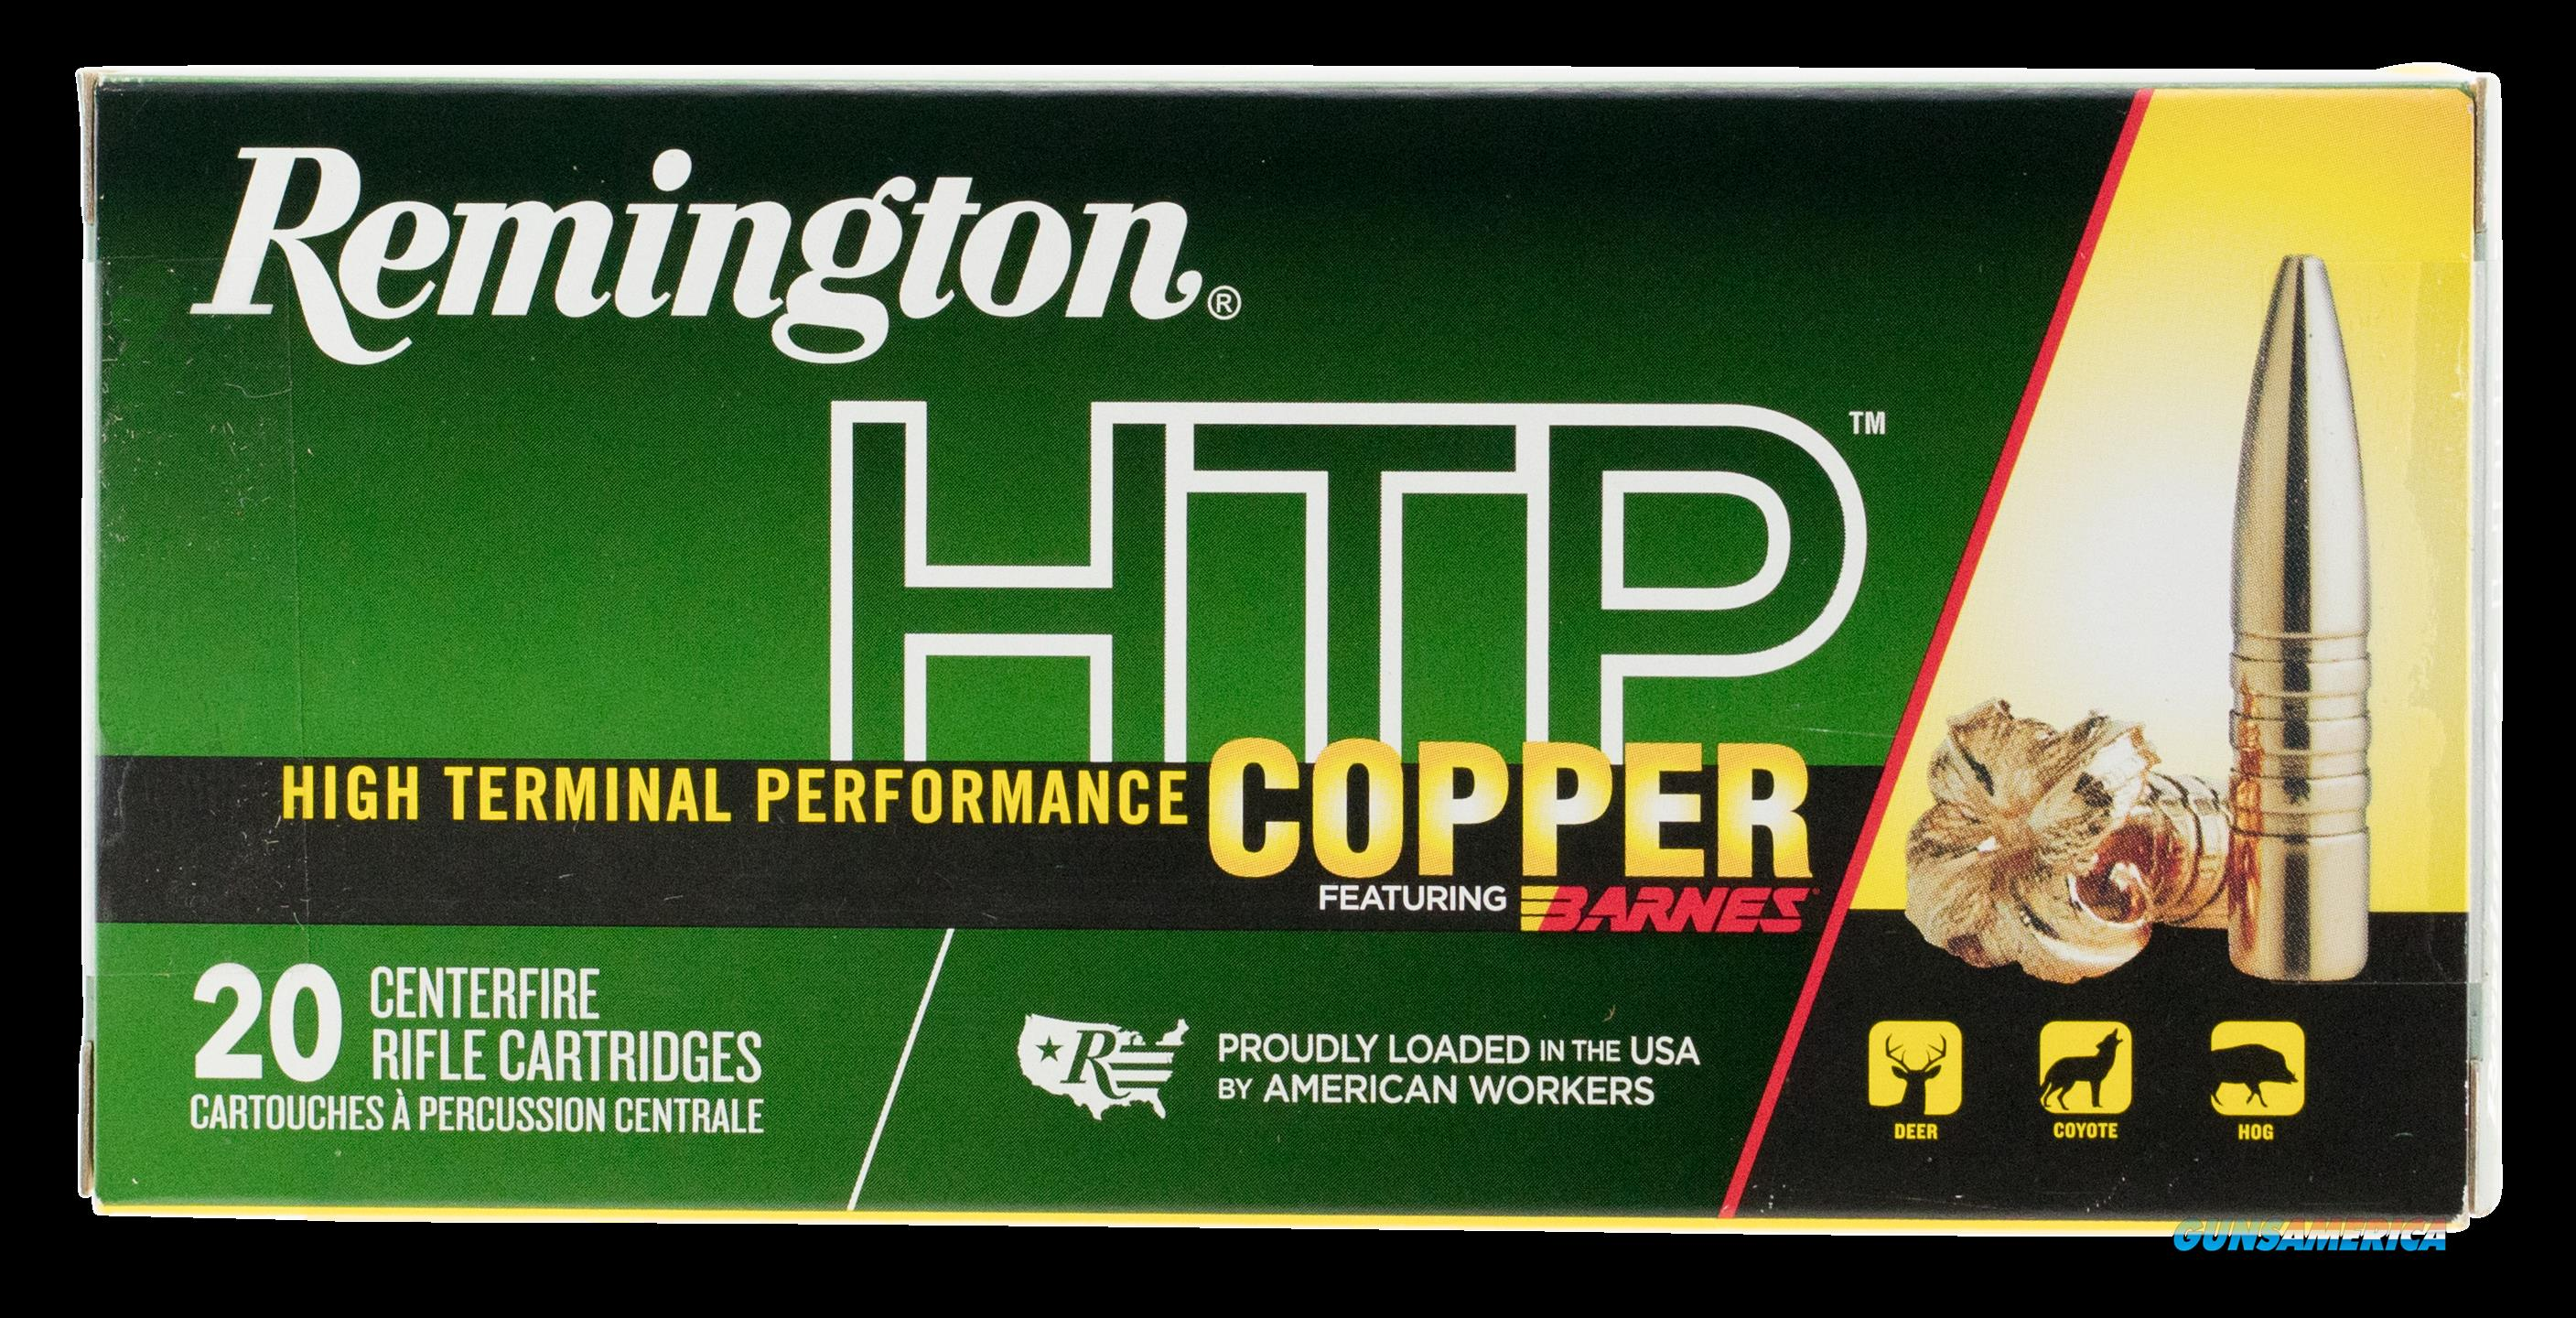 Remington Ammunition Htp Copper, Rem 27719 Htp7um    Htp Copper 150 Tsx Bt 20-10  Guns > Pistols > 1911 Pistol Copies (non-Colt)